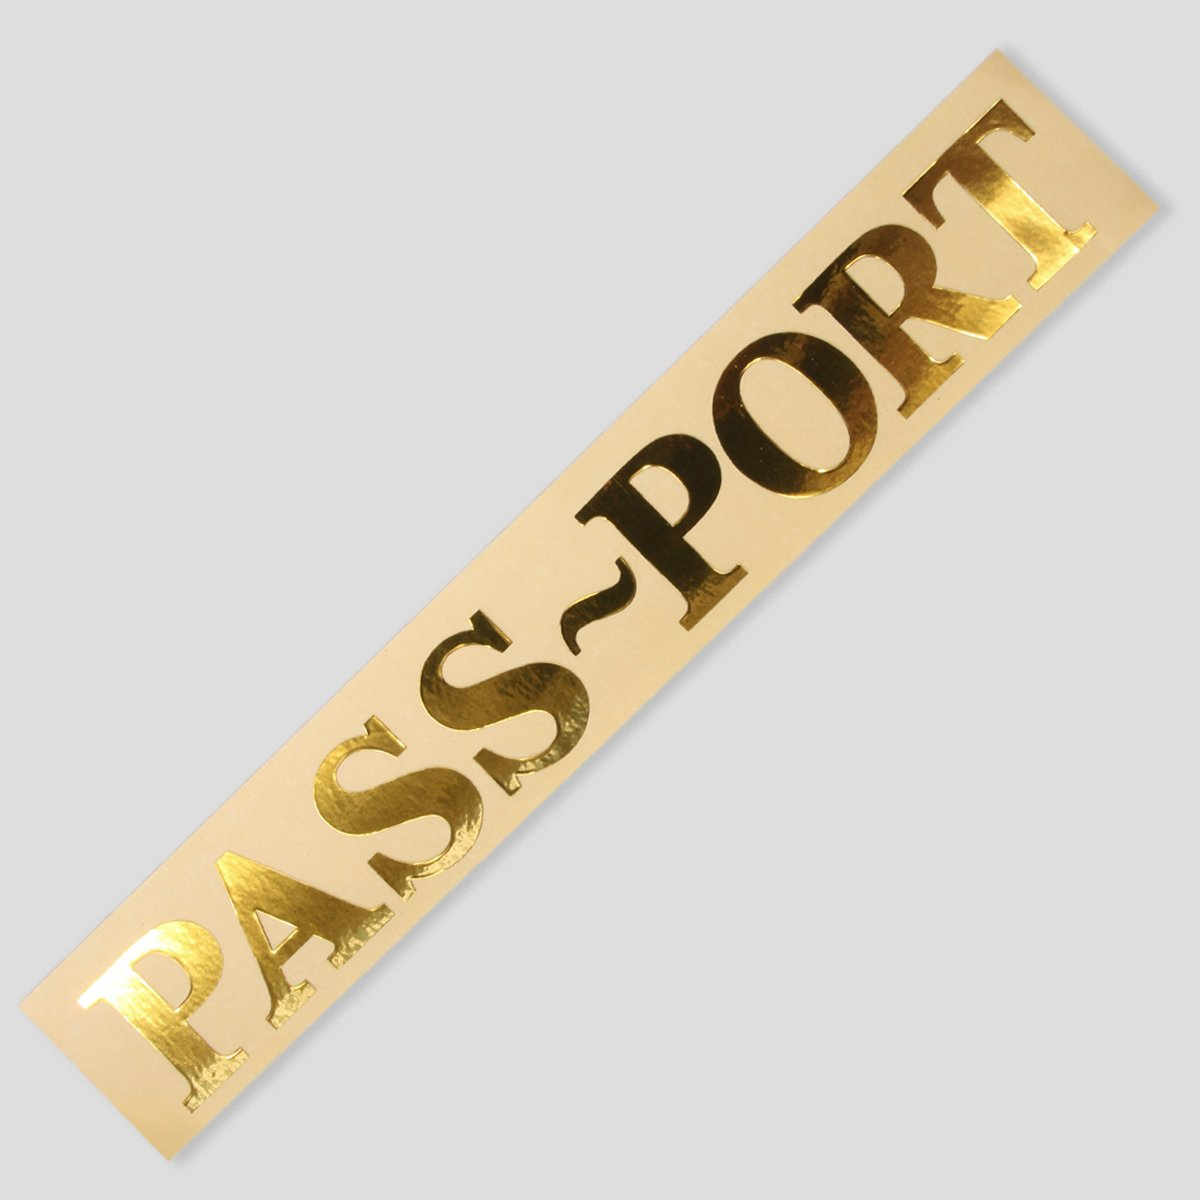 PASS~PORT BUMPER STICKER